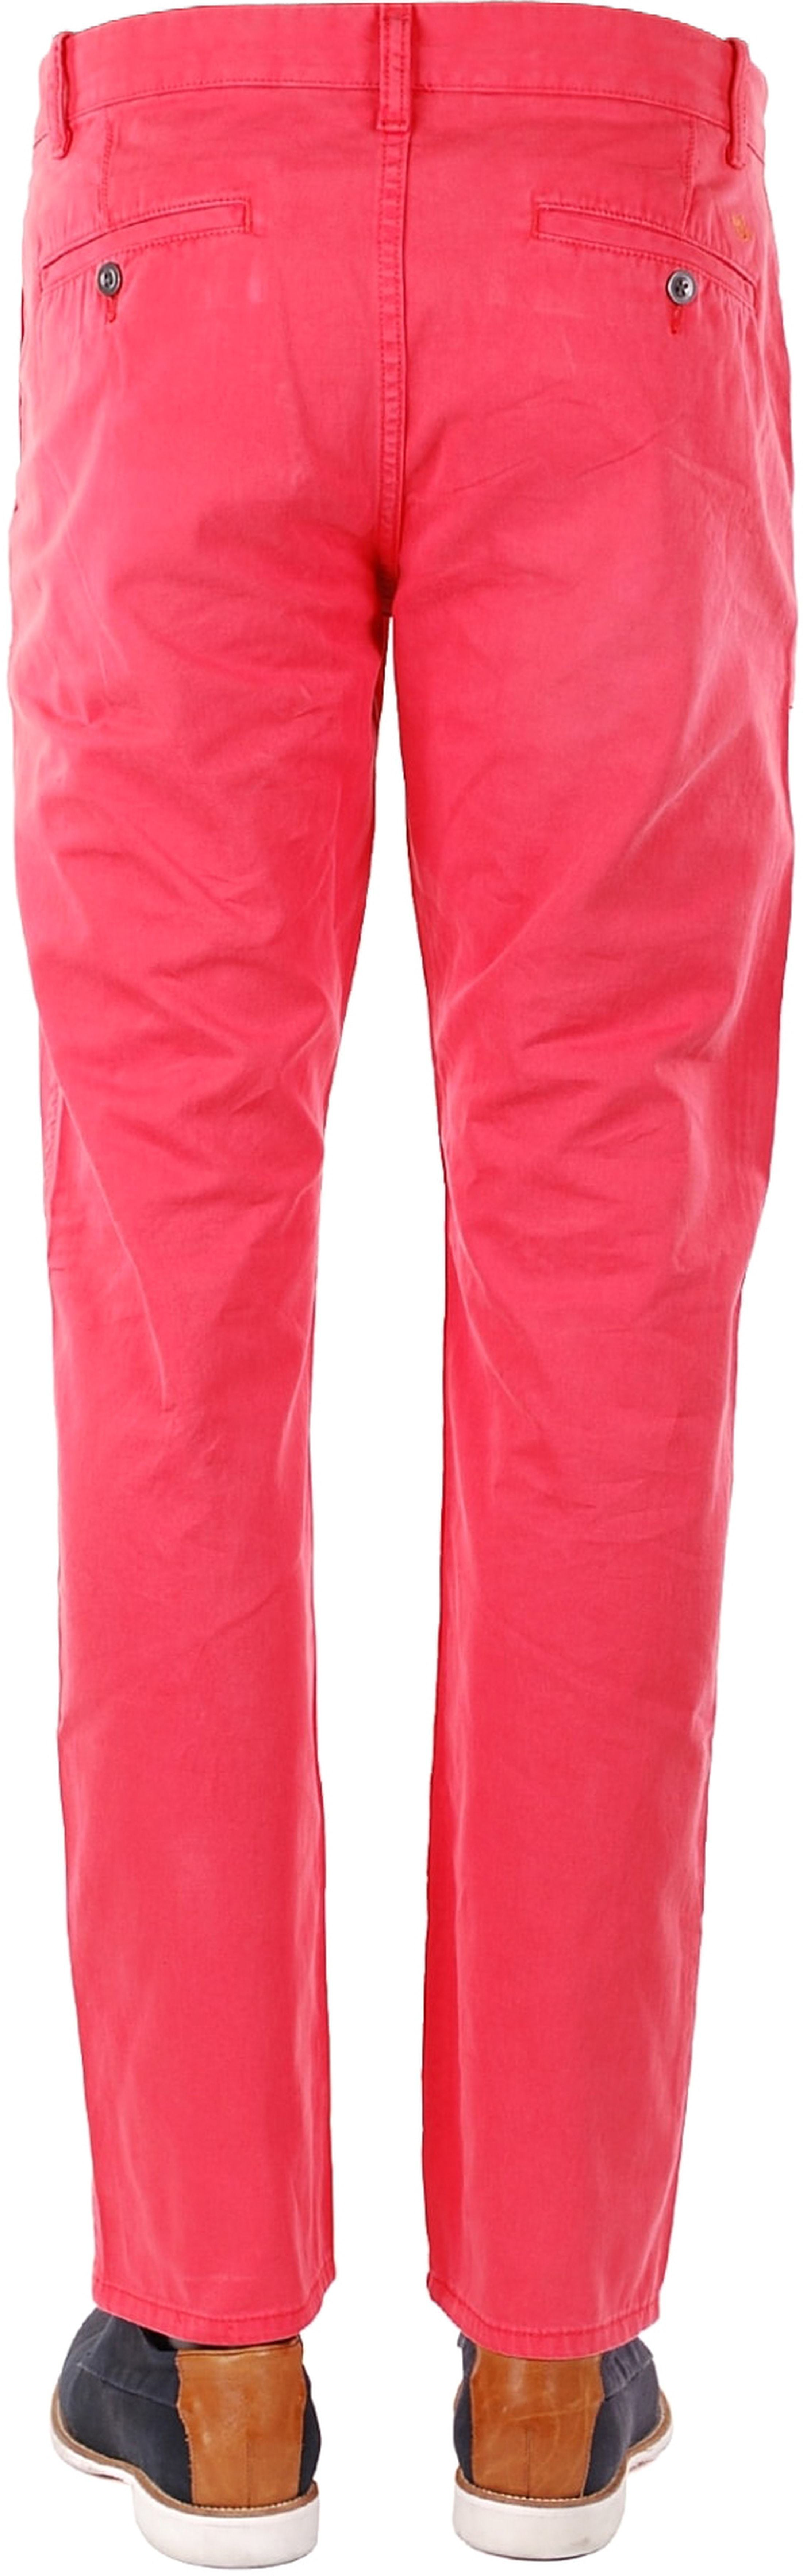 Dockers Chino Alpha Salsa Red foto 2